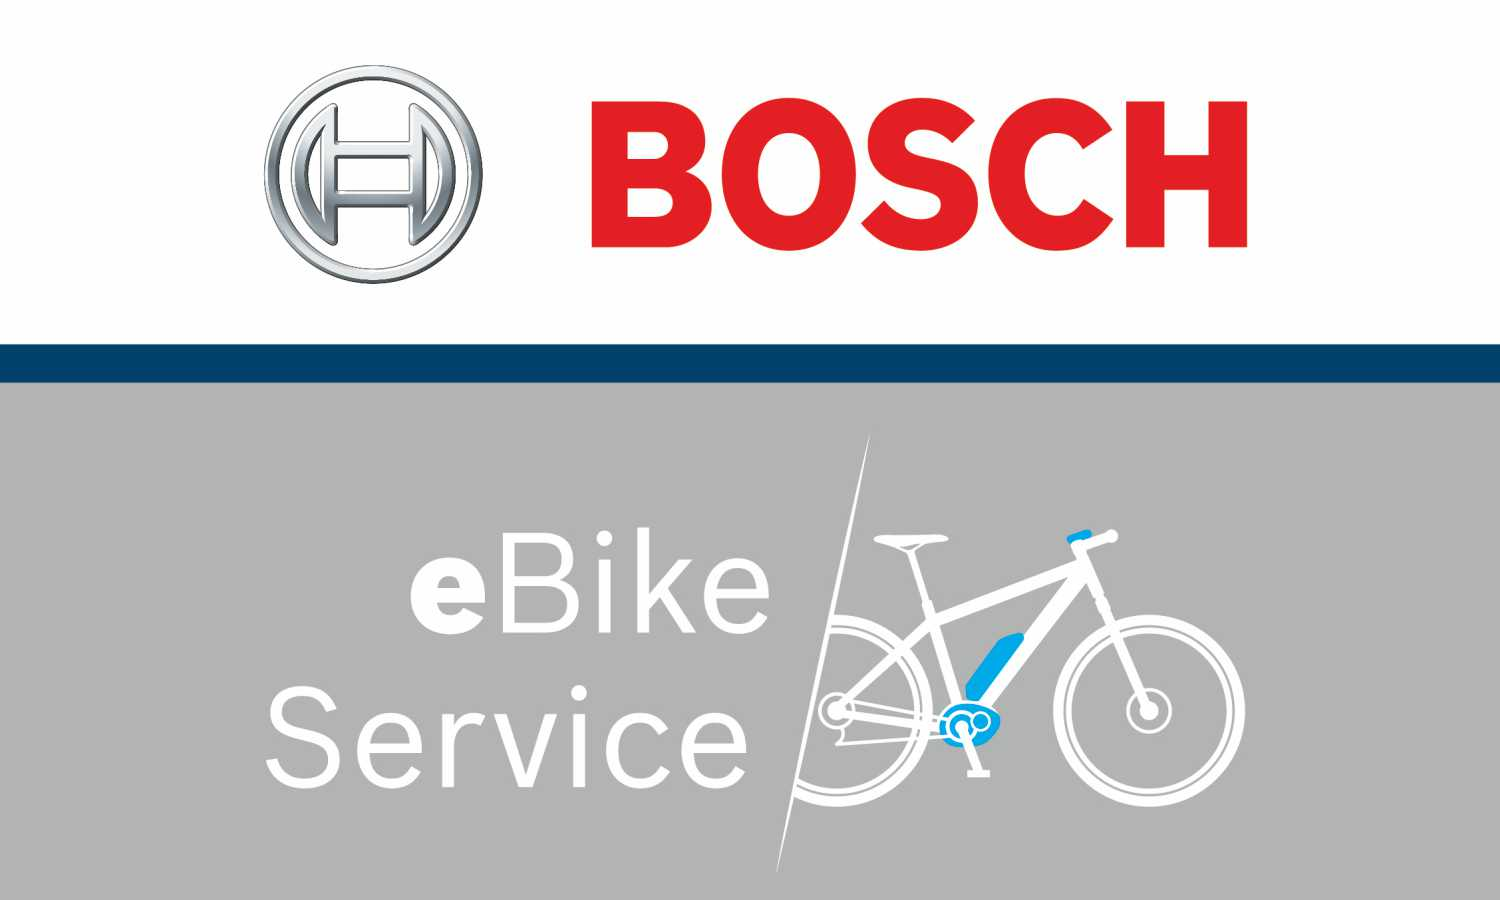 //fahrrad-herth.de/wp-content/uploads/2020/02/bosch-e-bike-service-center.jpg